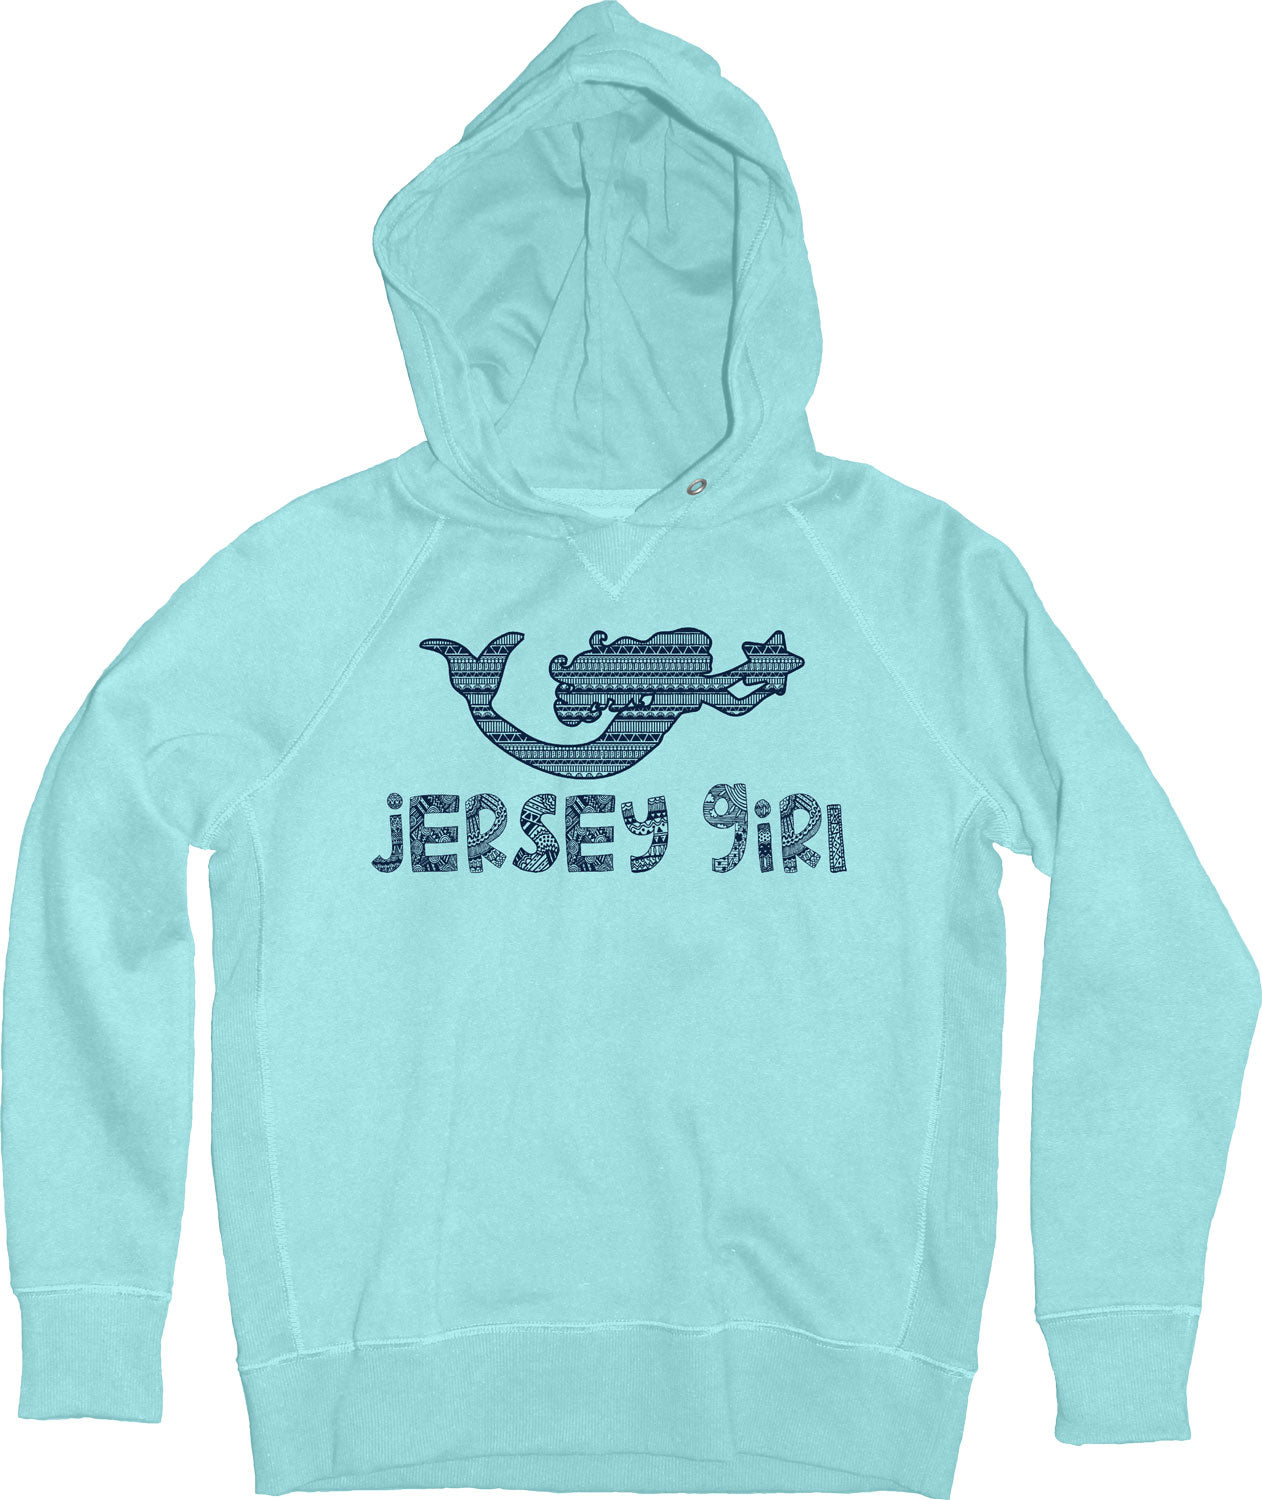 Jersey Girl sweatshirt (2 colors)